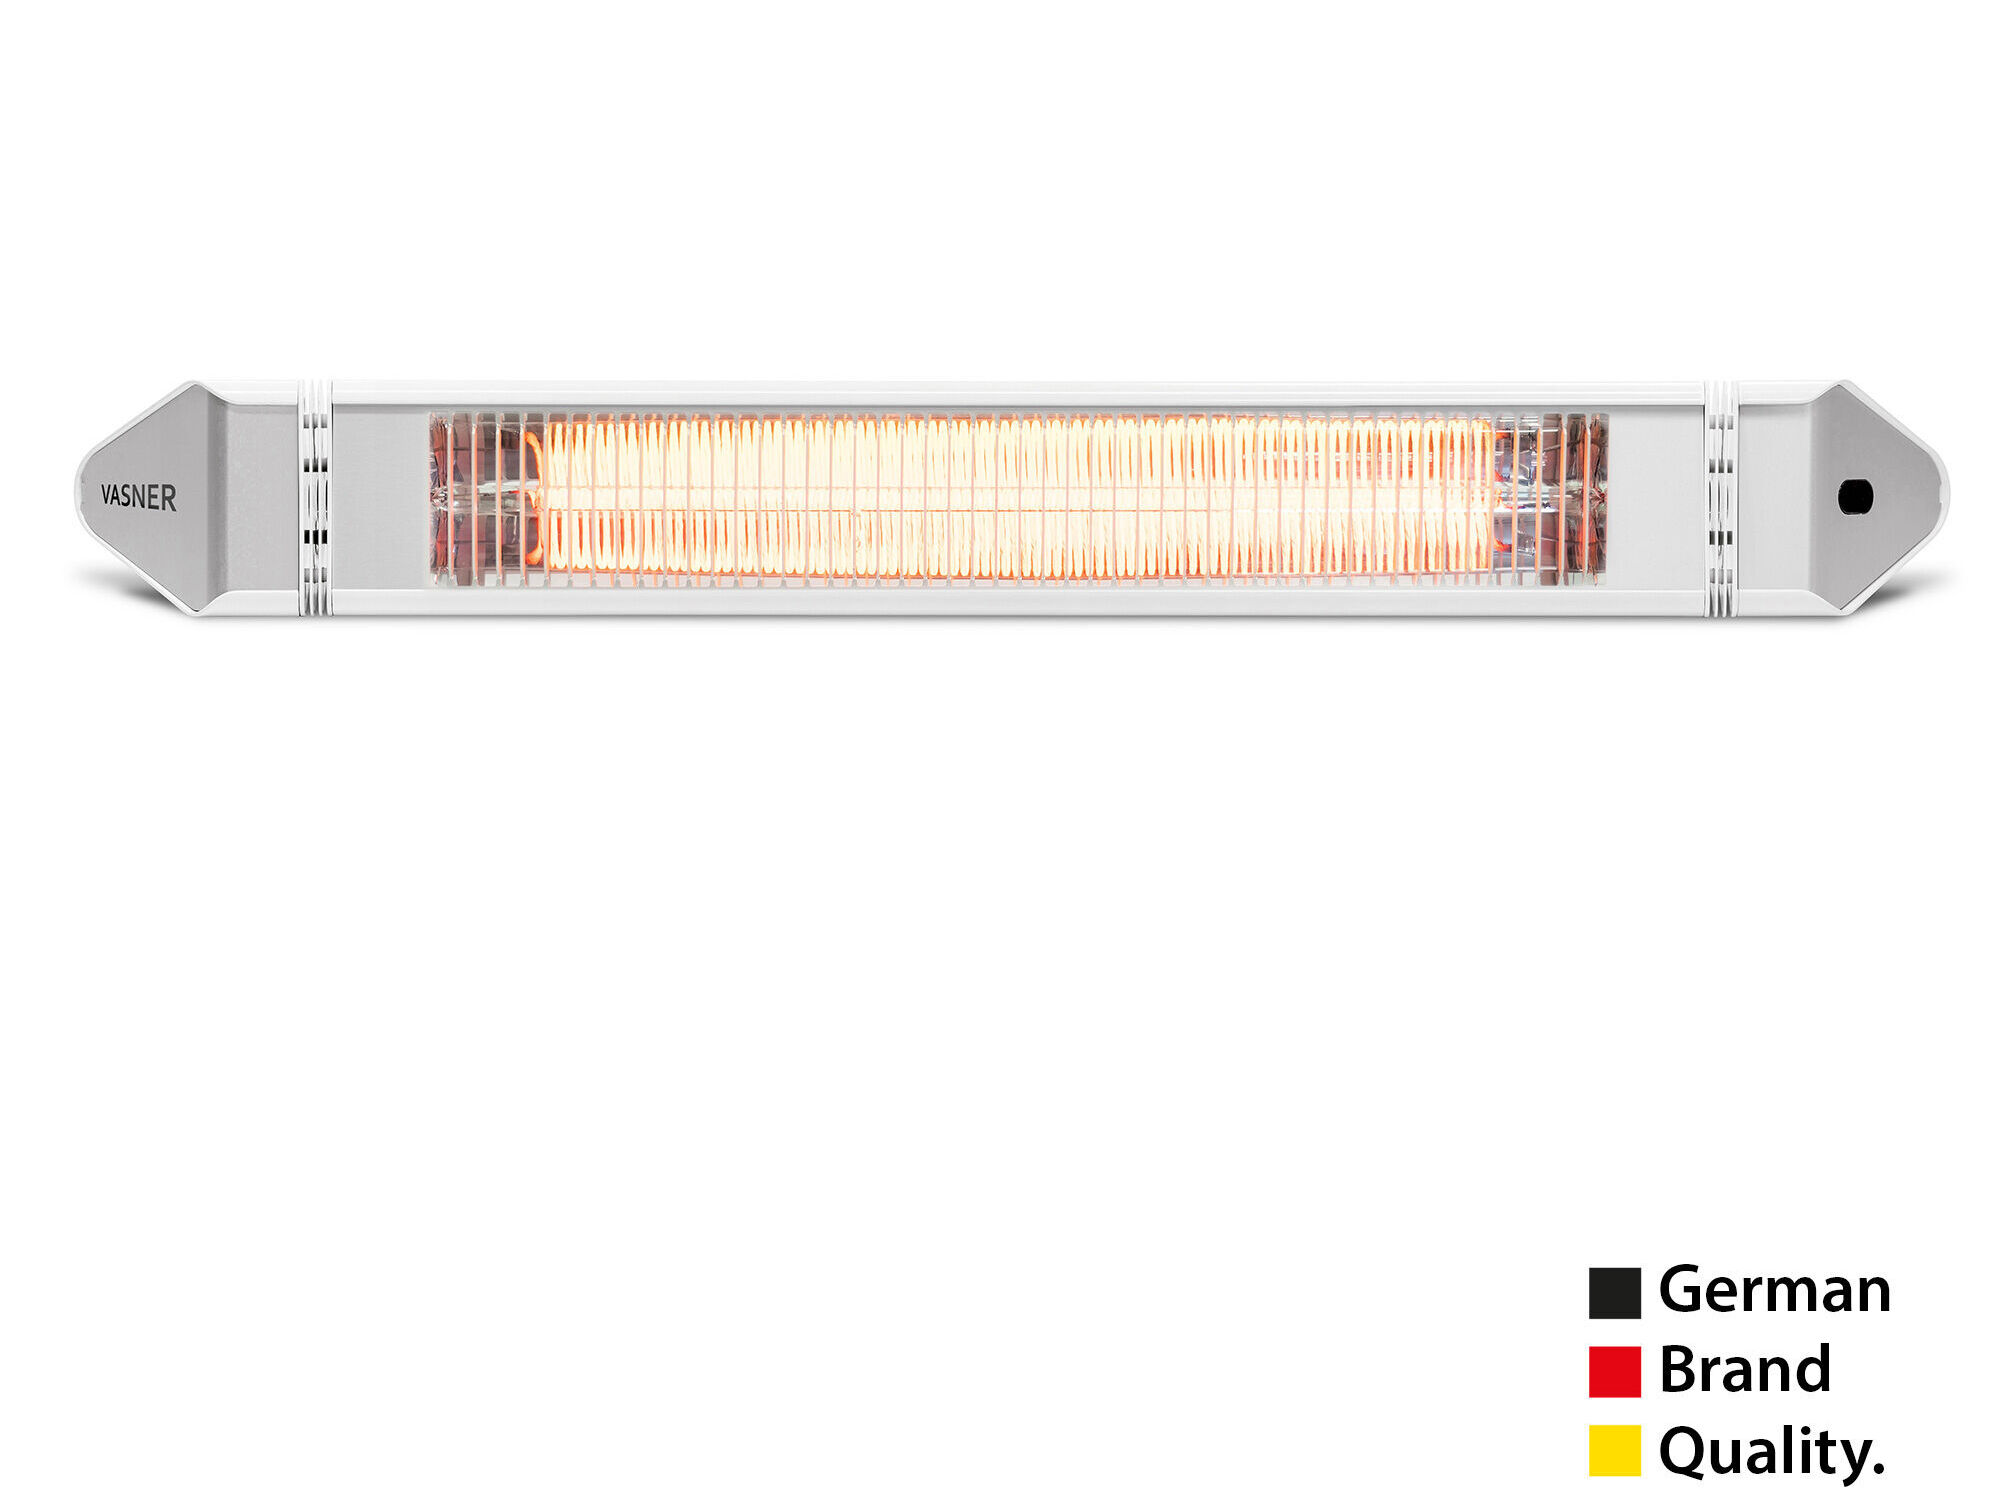 Slim electric patio heater for wall, ceiling, vertical corner installation